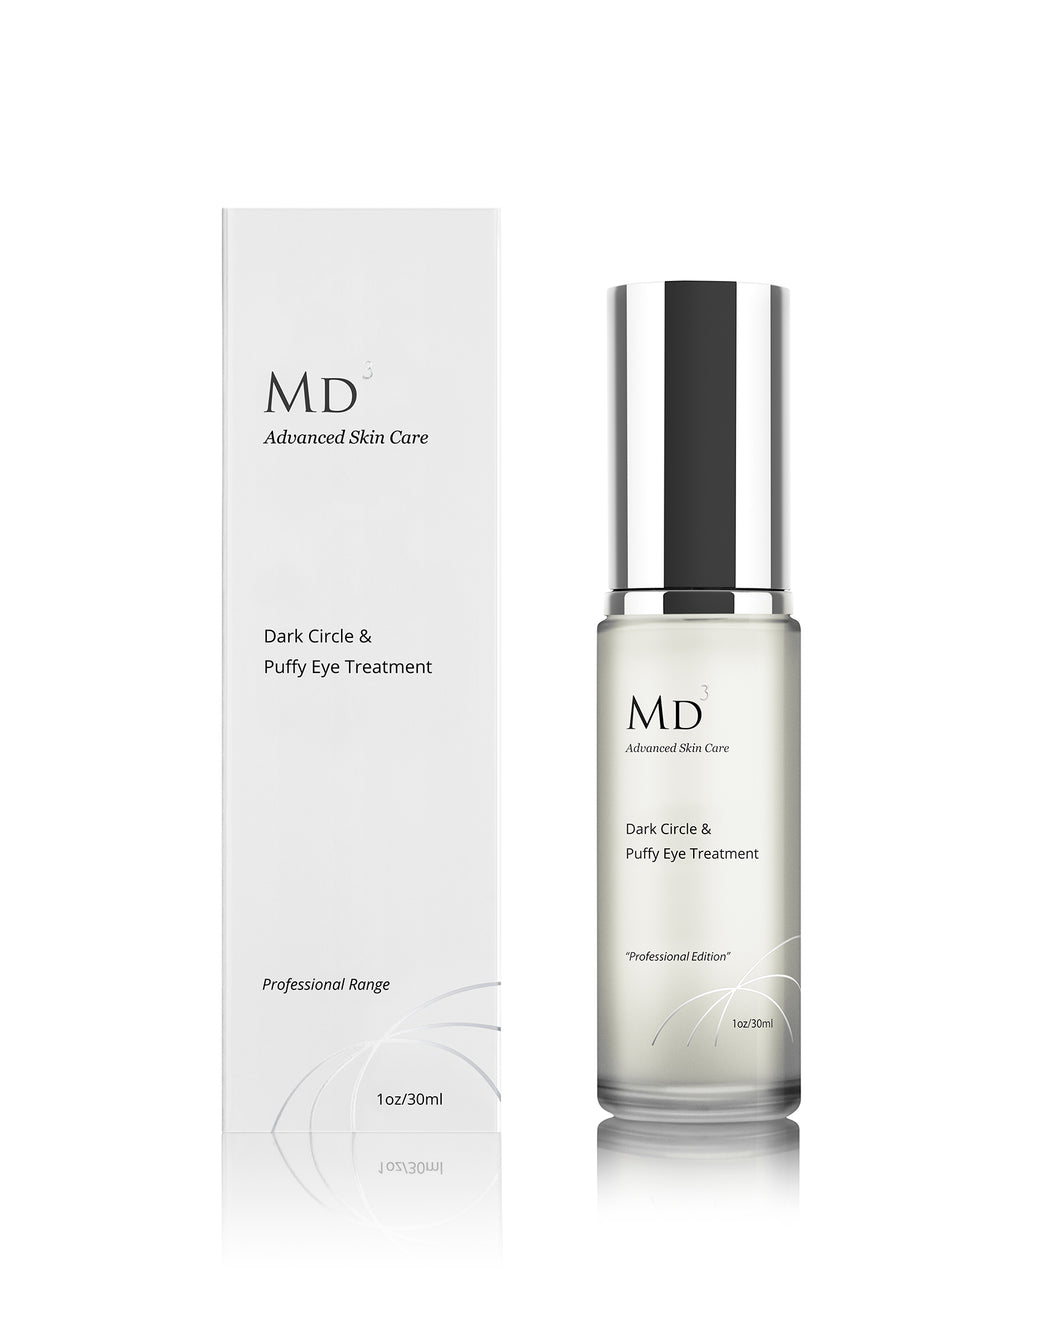 MD3 DARK CIRCLE & PUFFY EYE TREATMENT - MD3 Advanced Skin Care